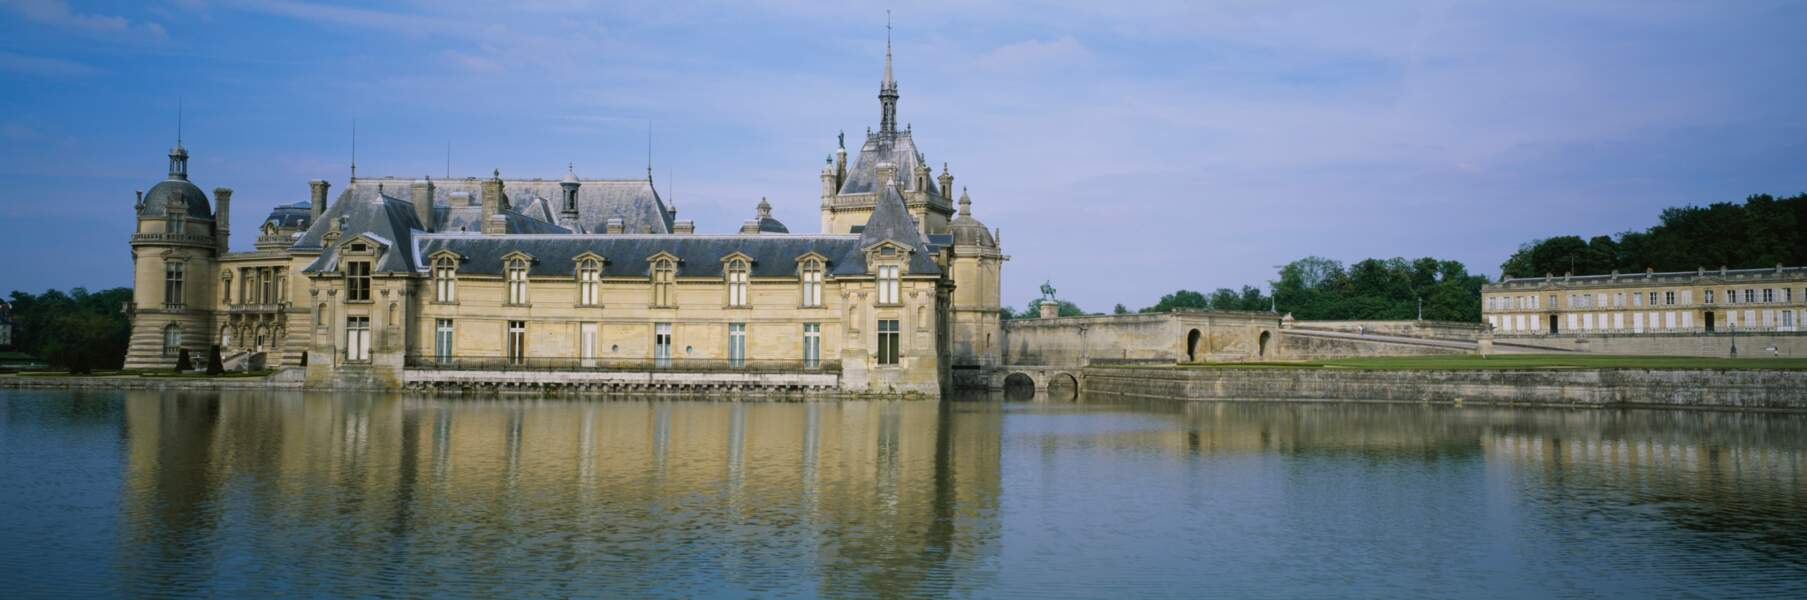 France - Le château de Chantilly, QG de l'ignoble Zorin